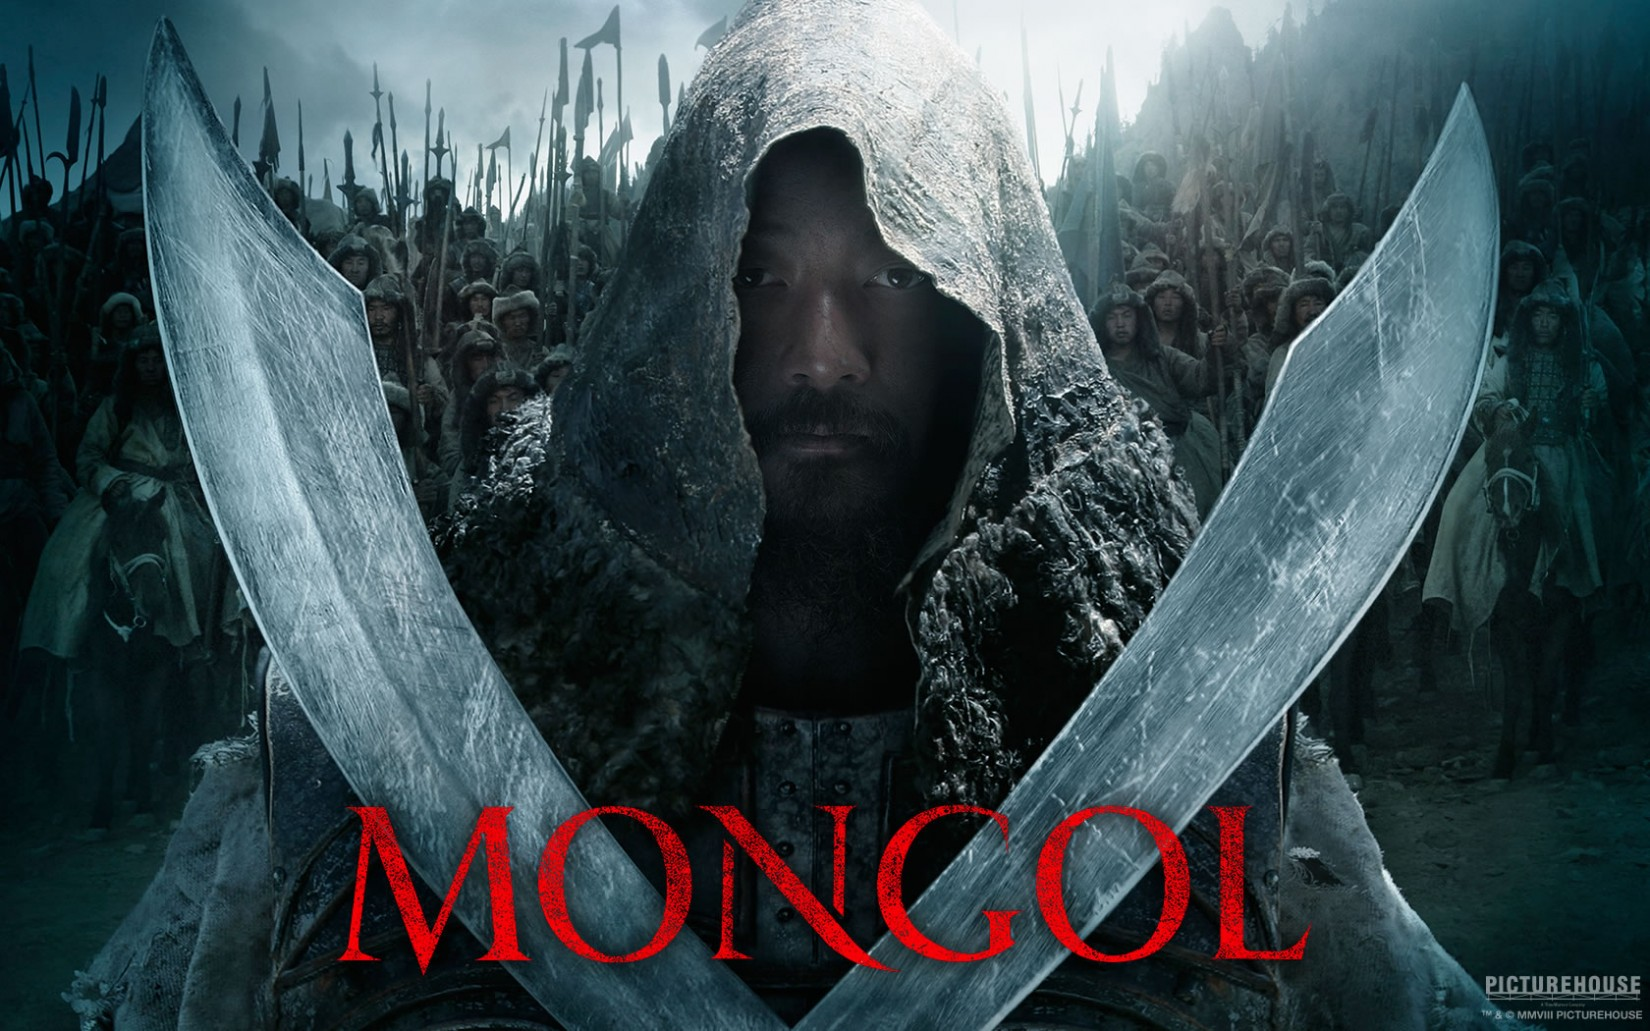 Mongol movie font